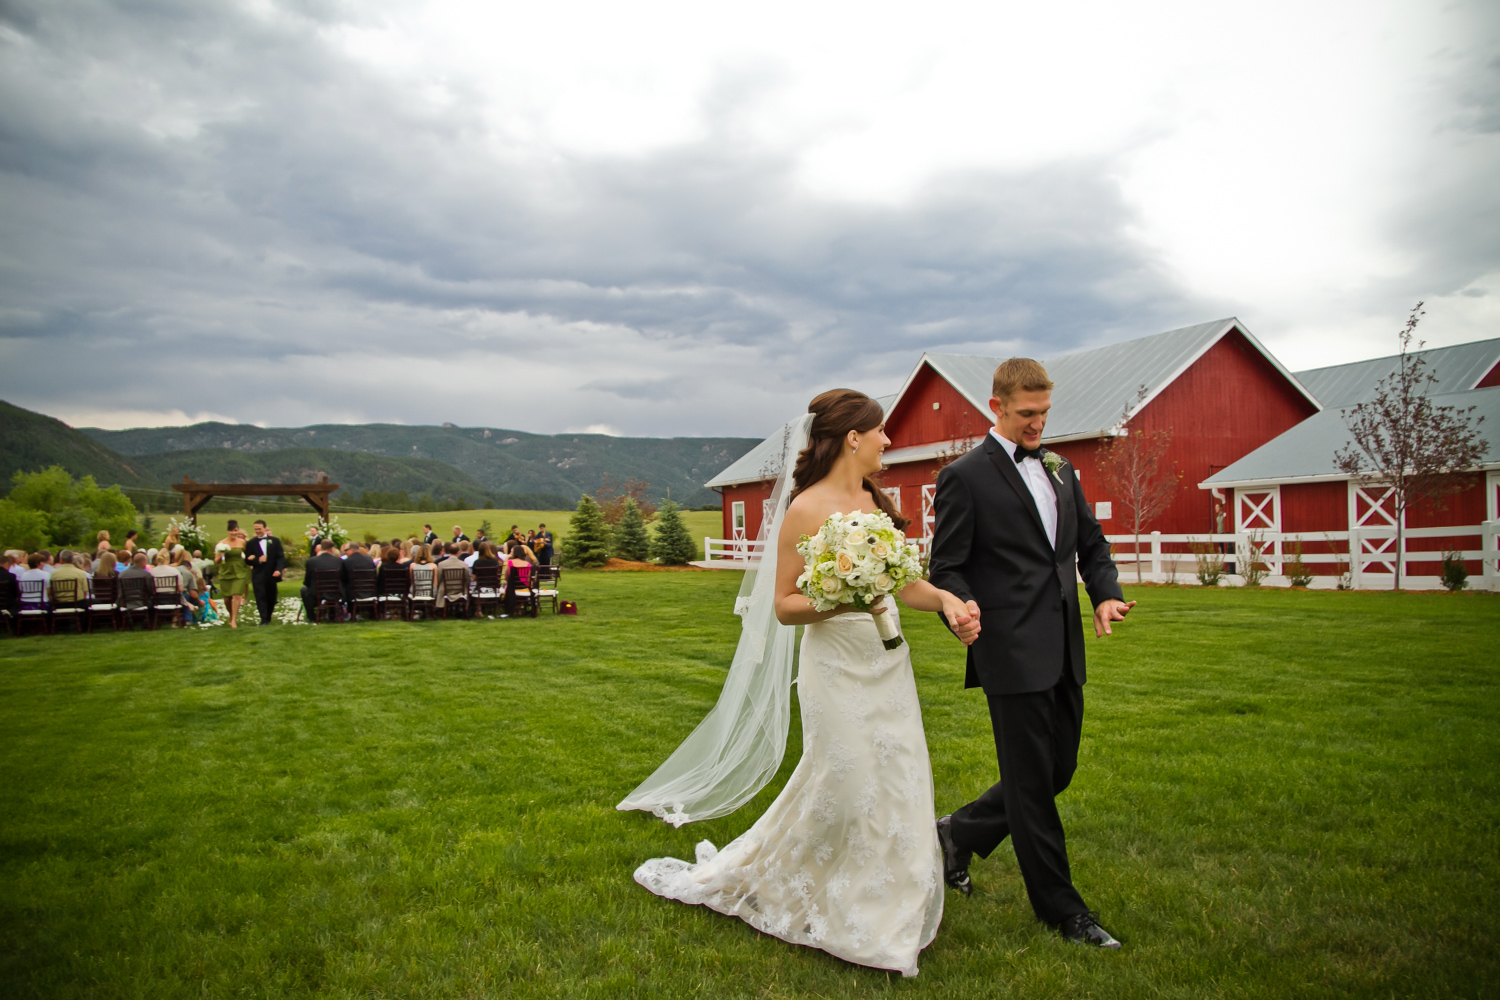 Crooked_Willow_Farms_Wedding_039.JPG